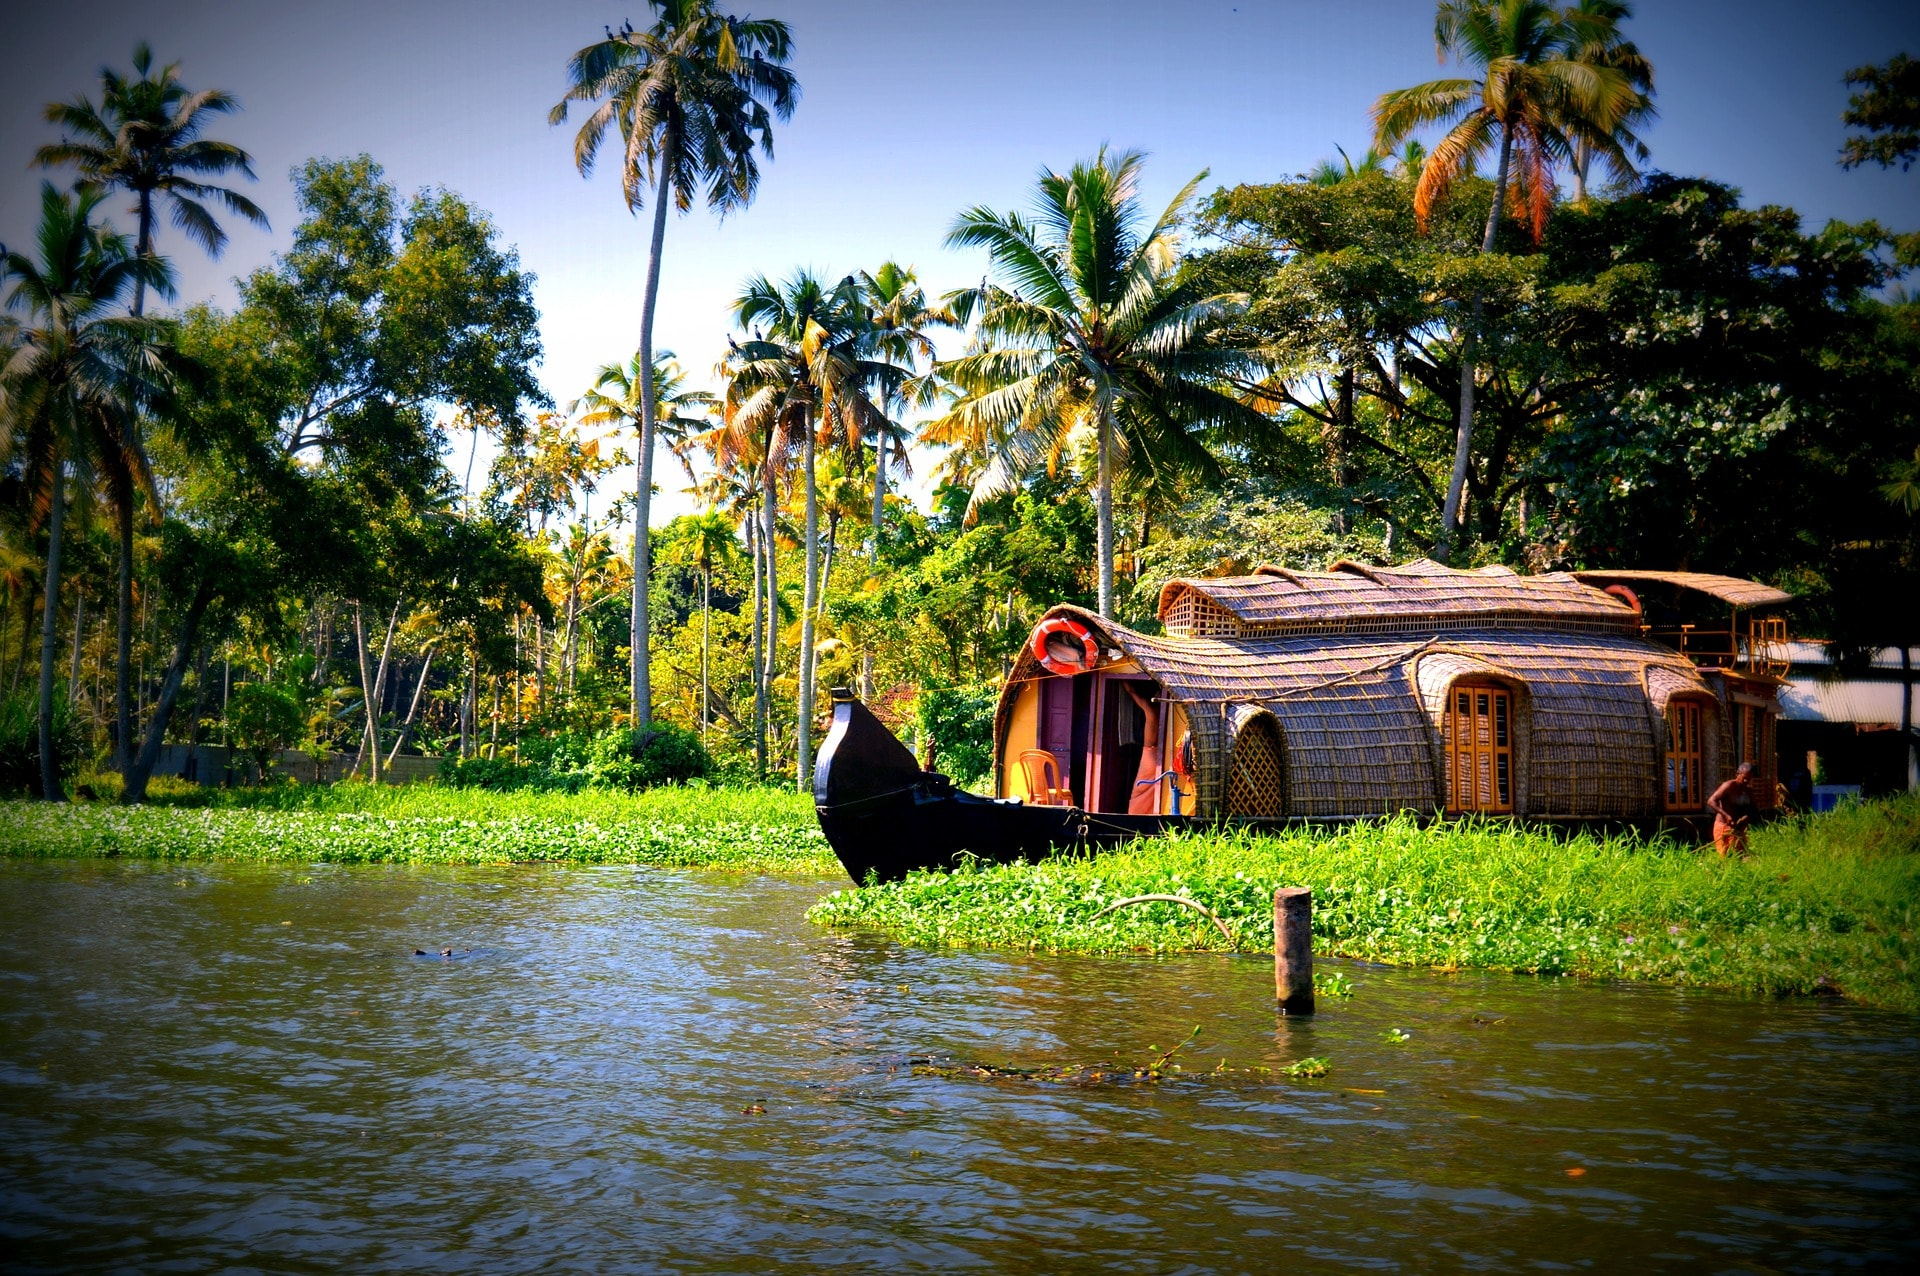 Alleppey Houseboat Tariff, Houseboats Booking Price / Rates in Kerala Houseboat and Houseboat Food Menu Vegetarian / Non Veg Recipes in Alleppey